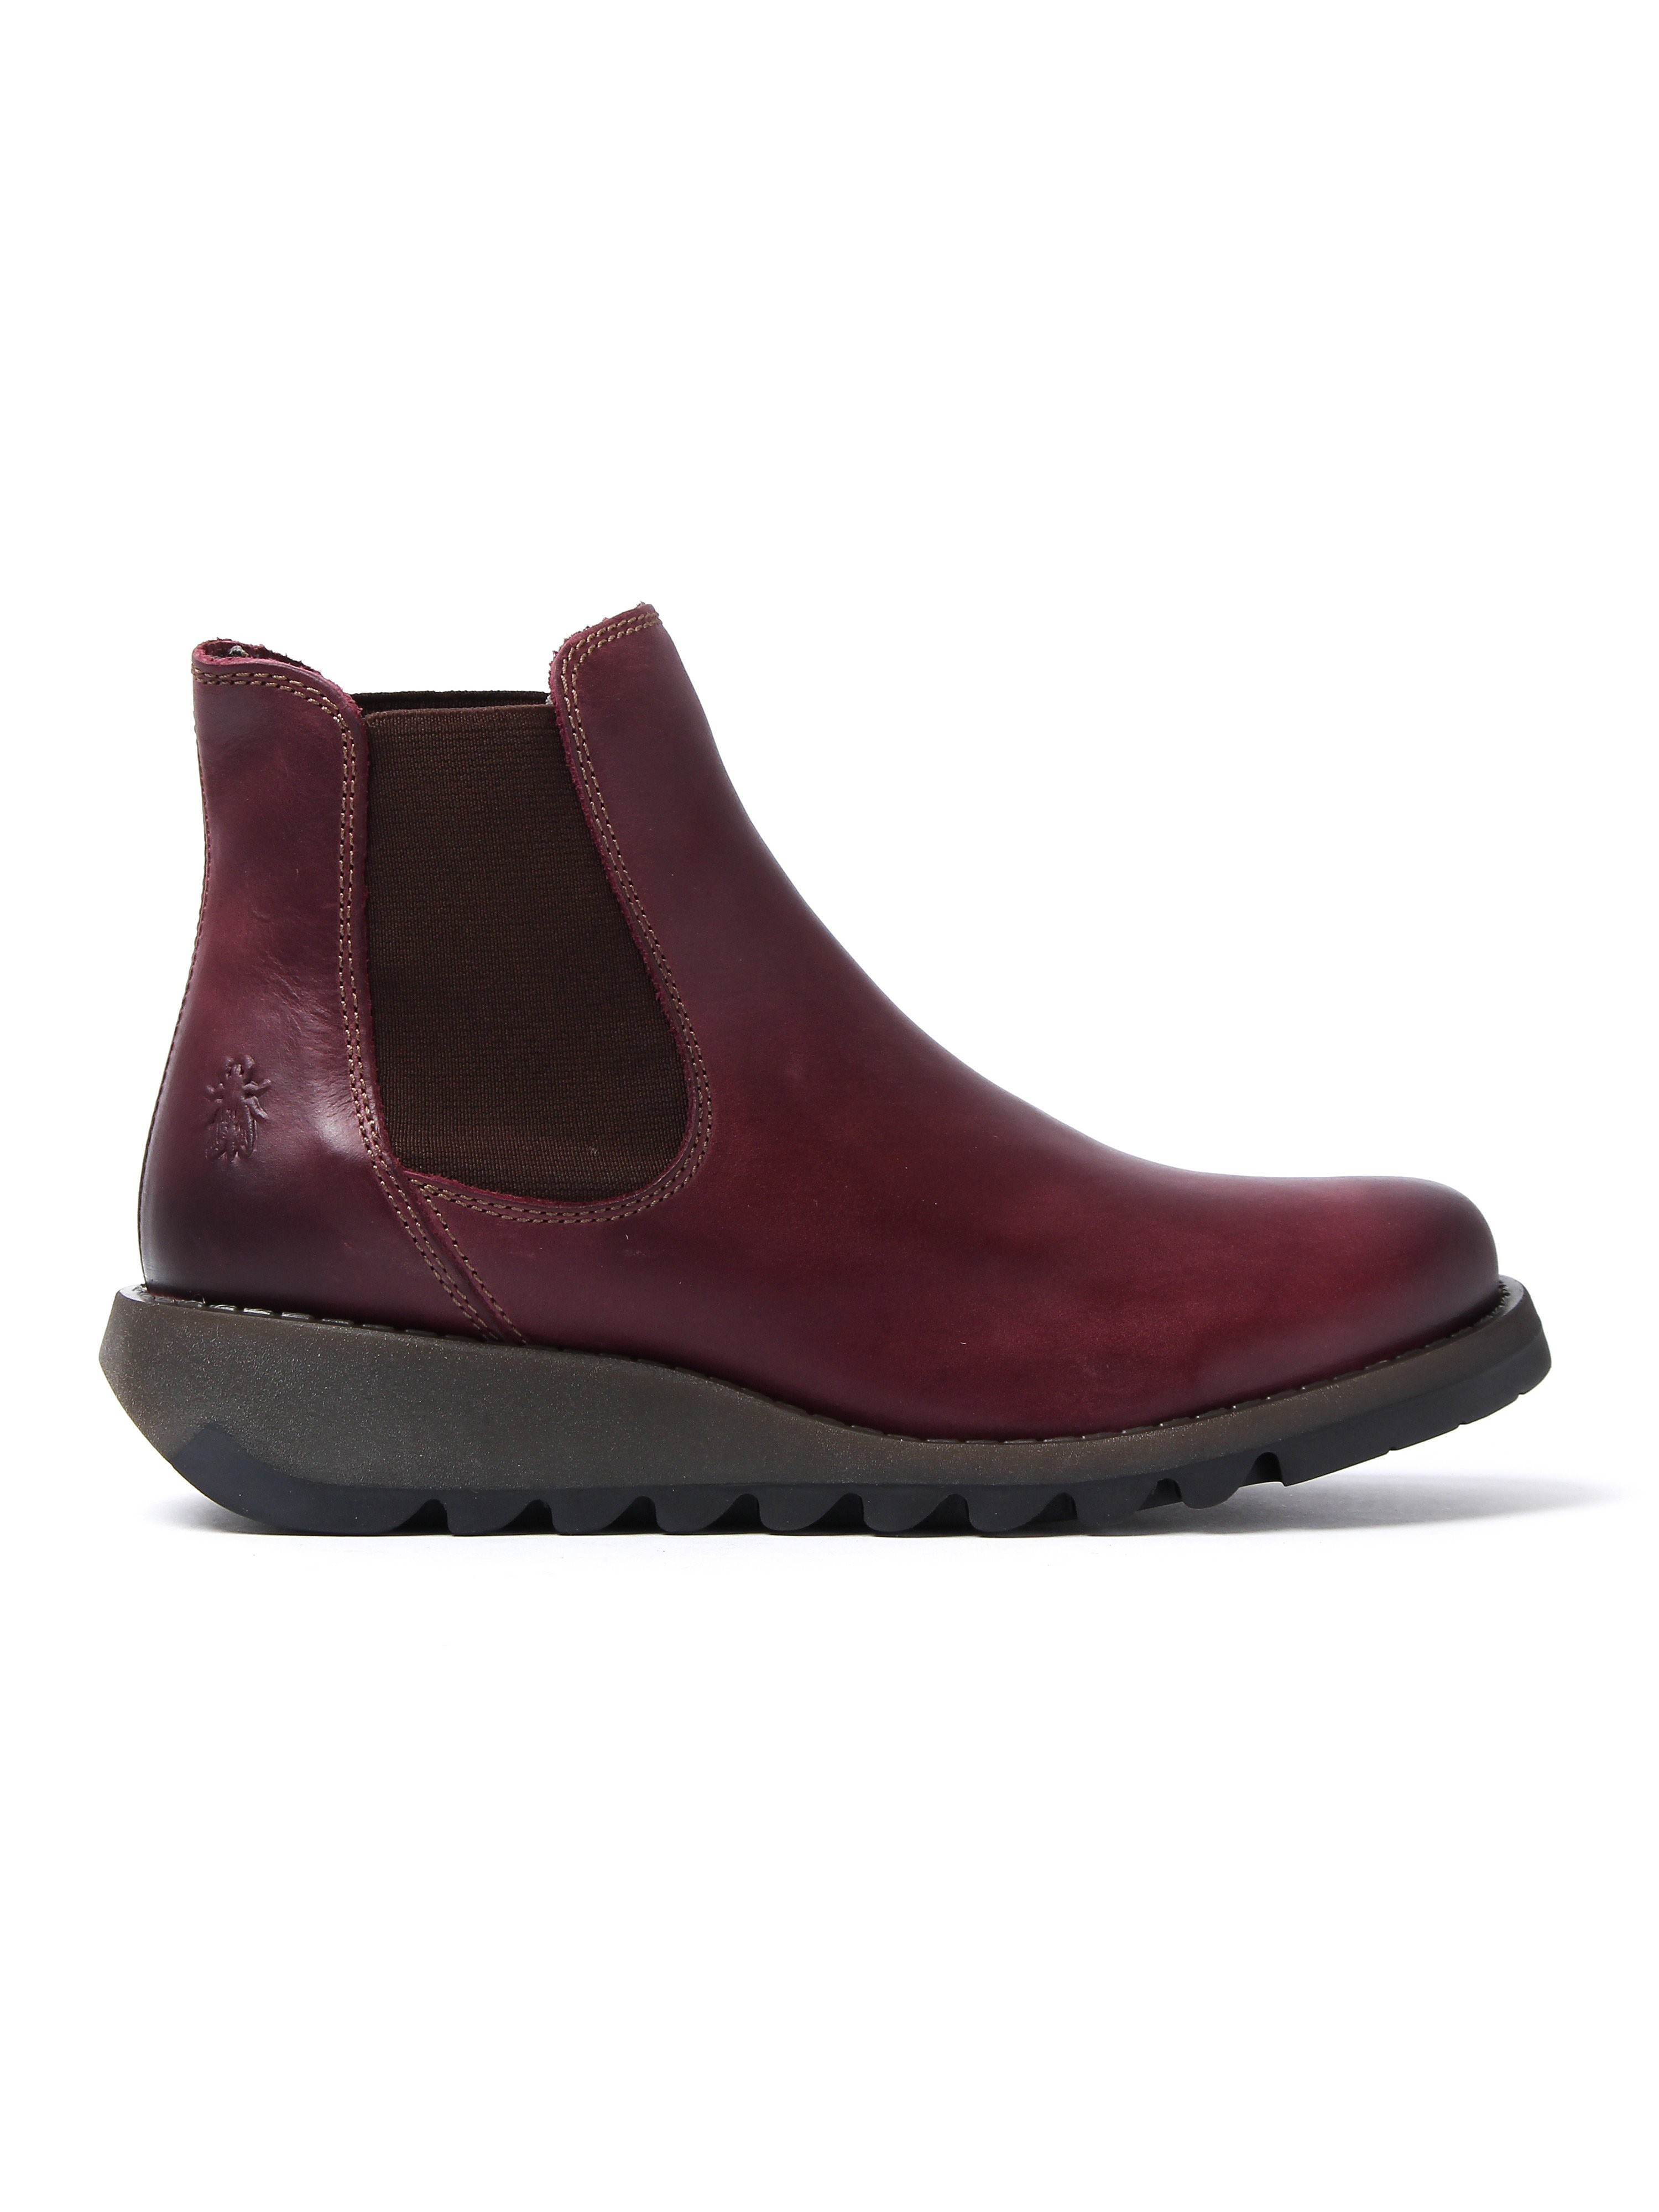 Fly London Women's Salv Chelsea Boots - Purple Leather